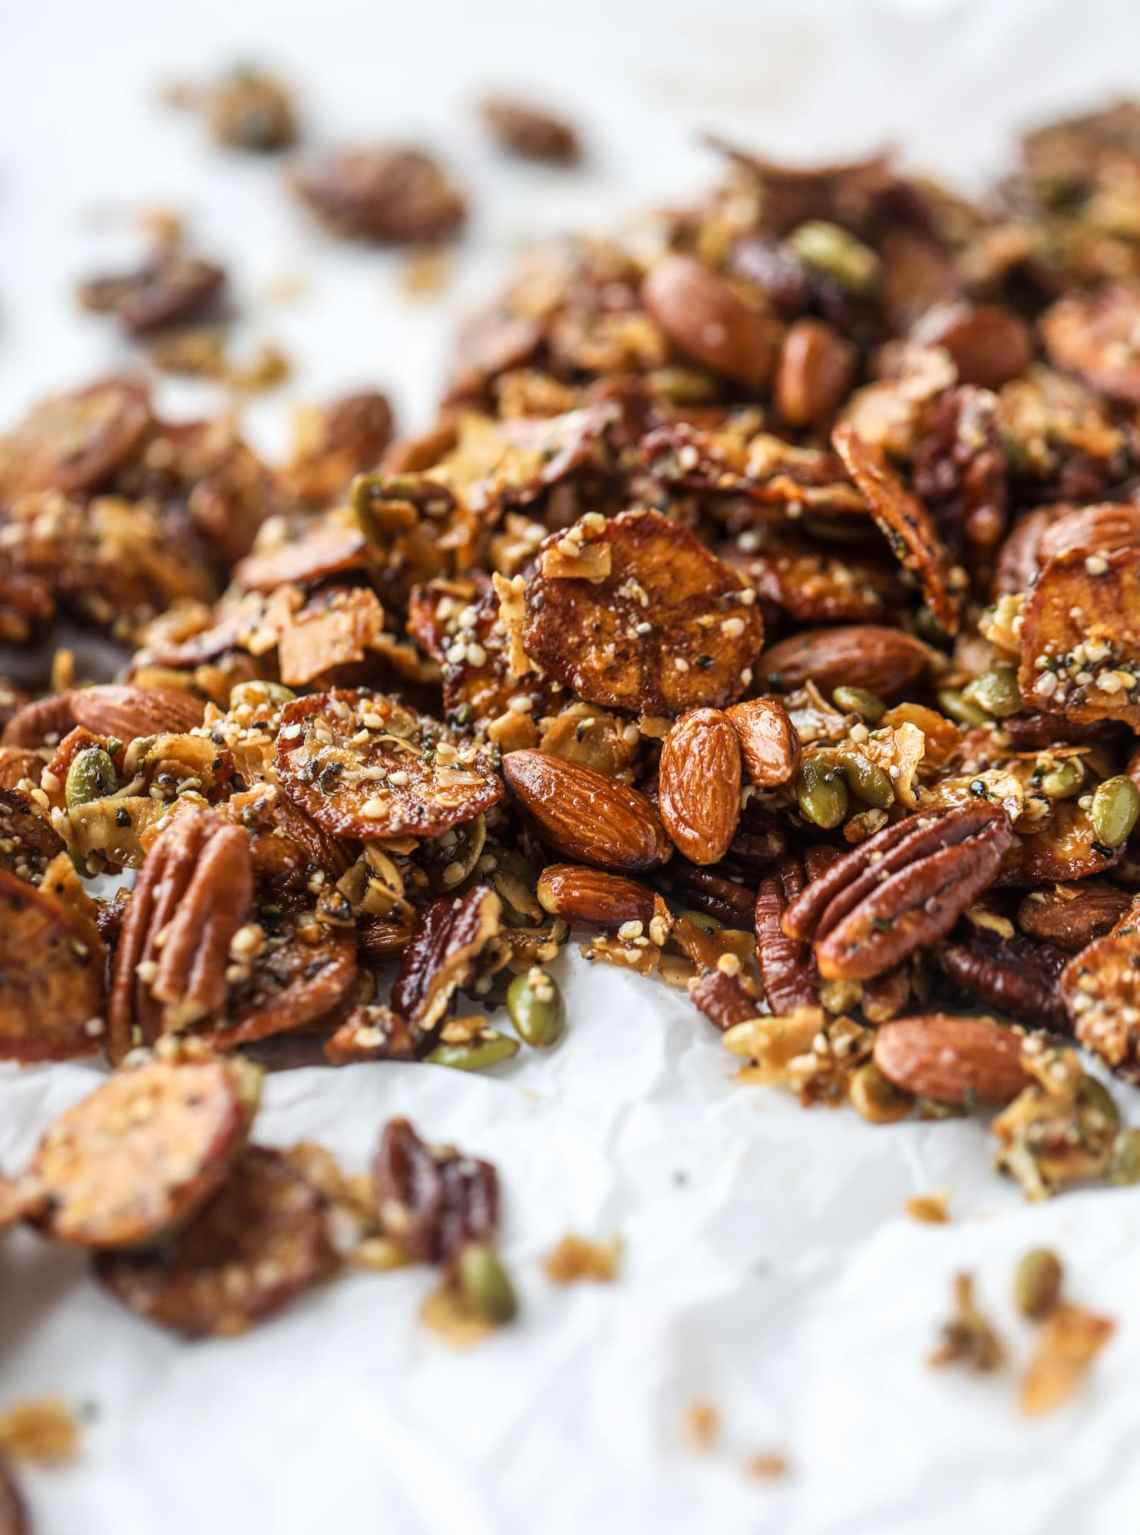 This delicious healthy snack mix is perfect to prep for snacks on the go! It's satisfying, flavorful, both sweet and savory and the best part - is super crunchy. It's full of nuts, some fruit, a bit of coconut, spices, hemp hearts and chia! I howsweeteats.com #healthy #trailmix